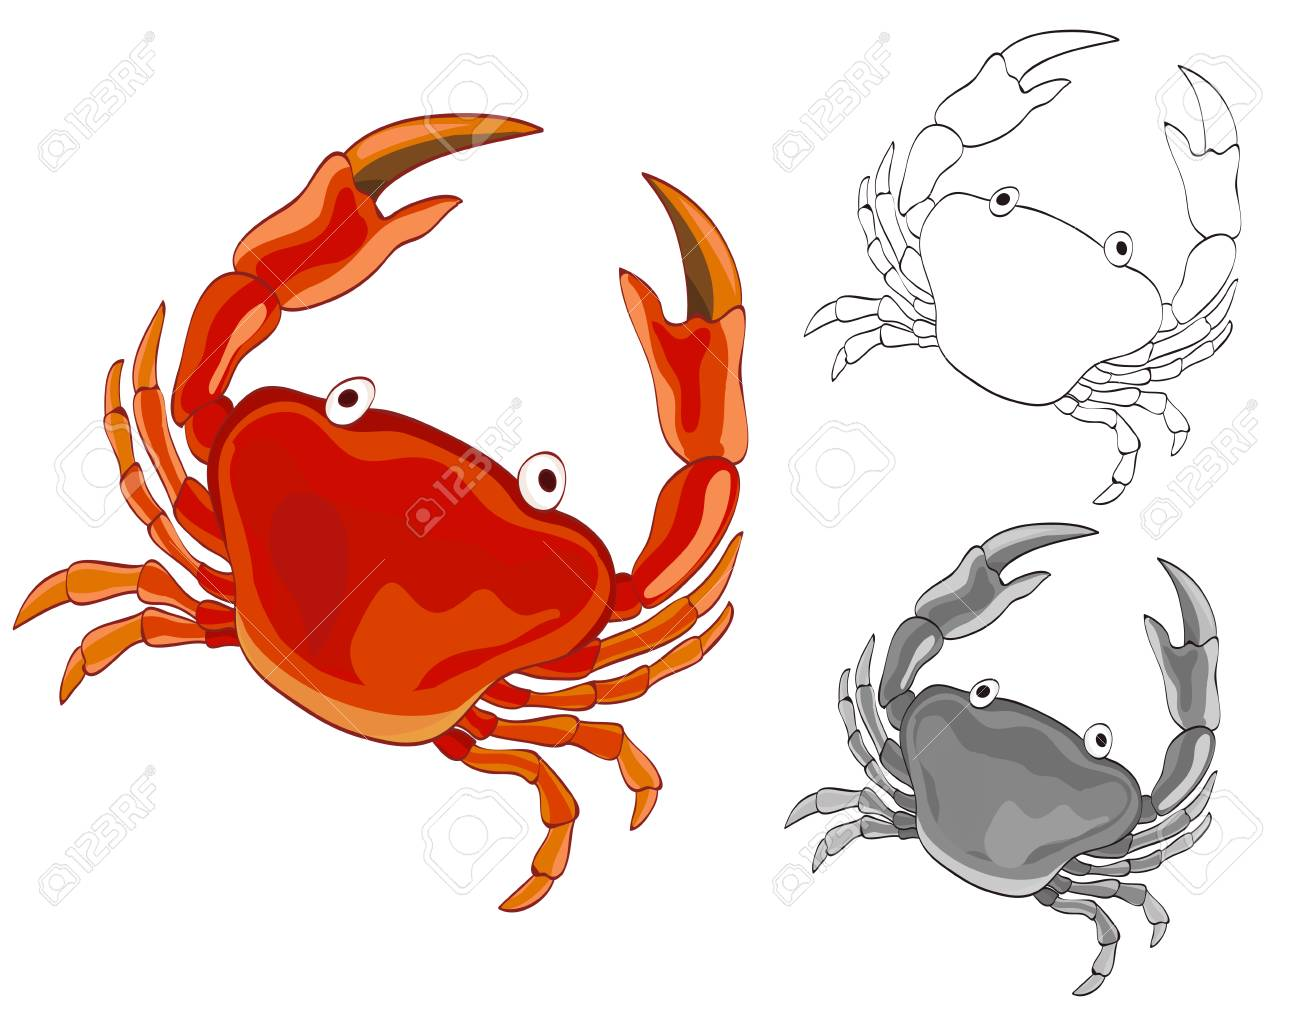 1300x1033 Crab Drawing With Grayscale And Coloring Page Versions. Vector